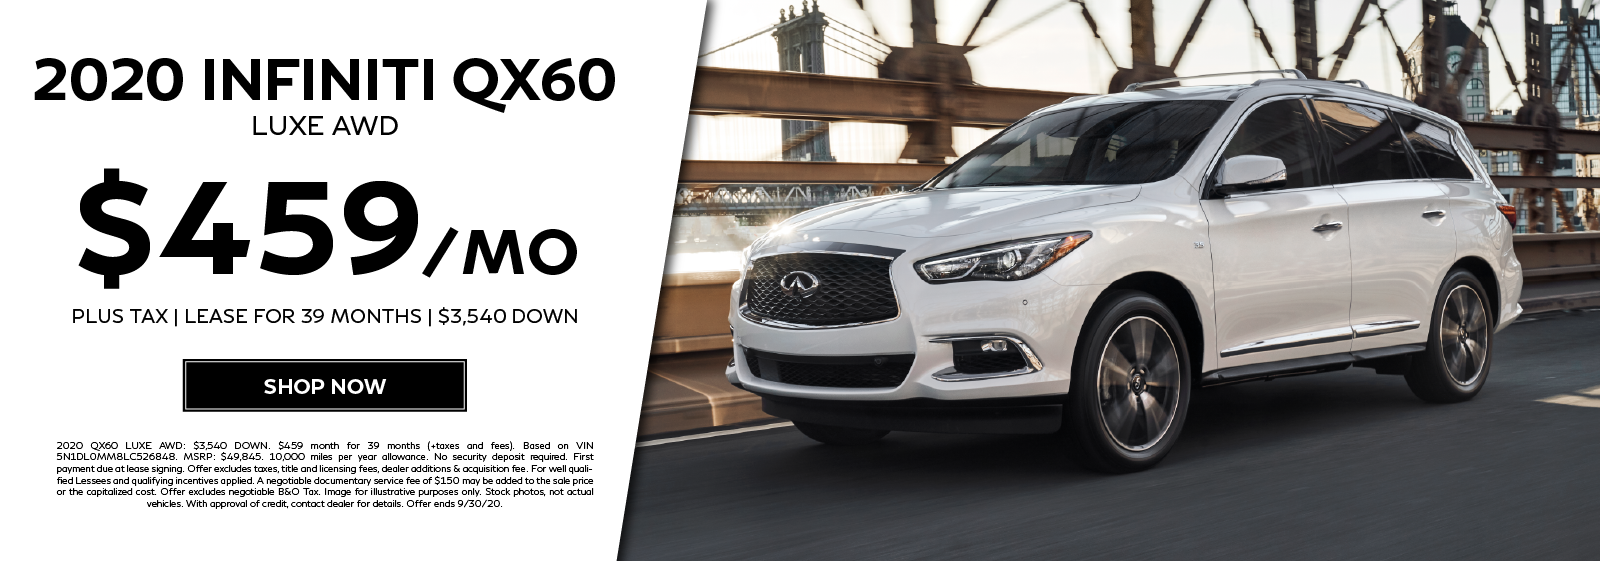 Lease a 2020 QX60 LUXE AWD for $459 per month for 39 months. Click to shop now.